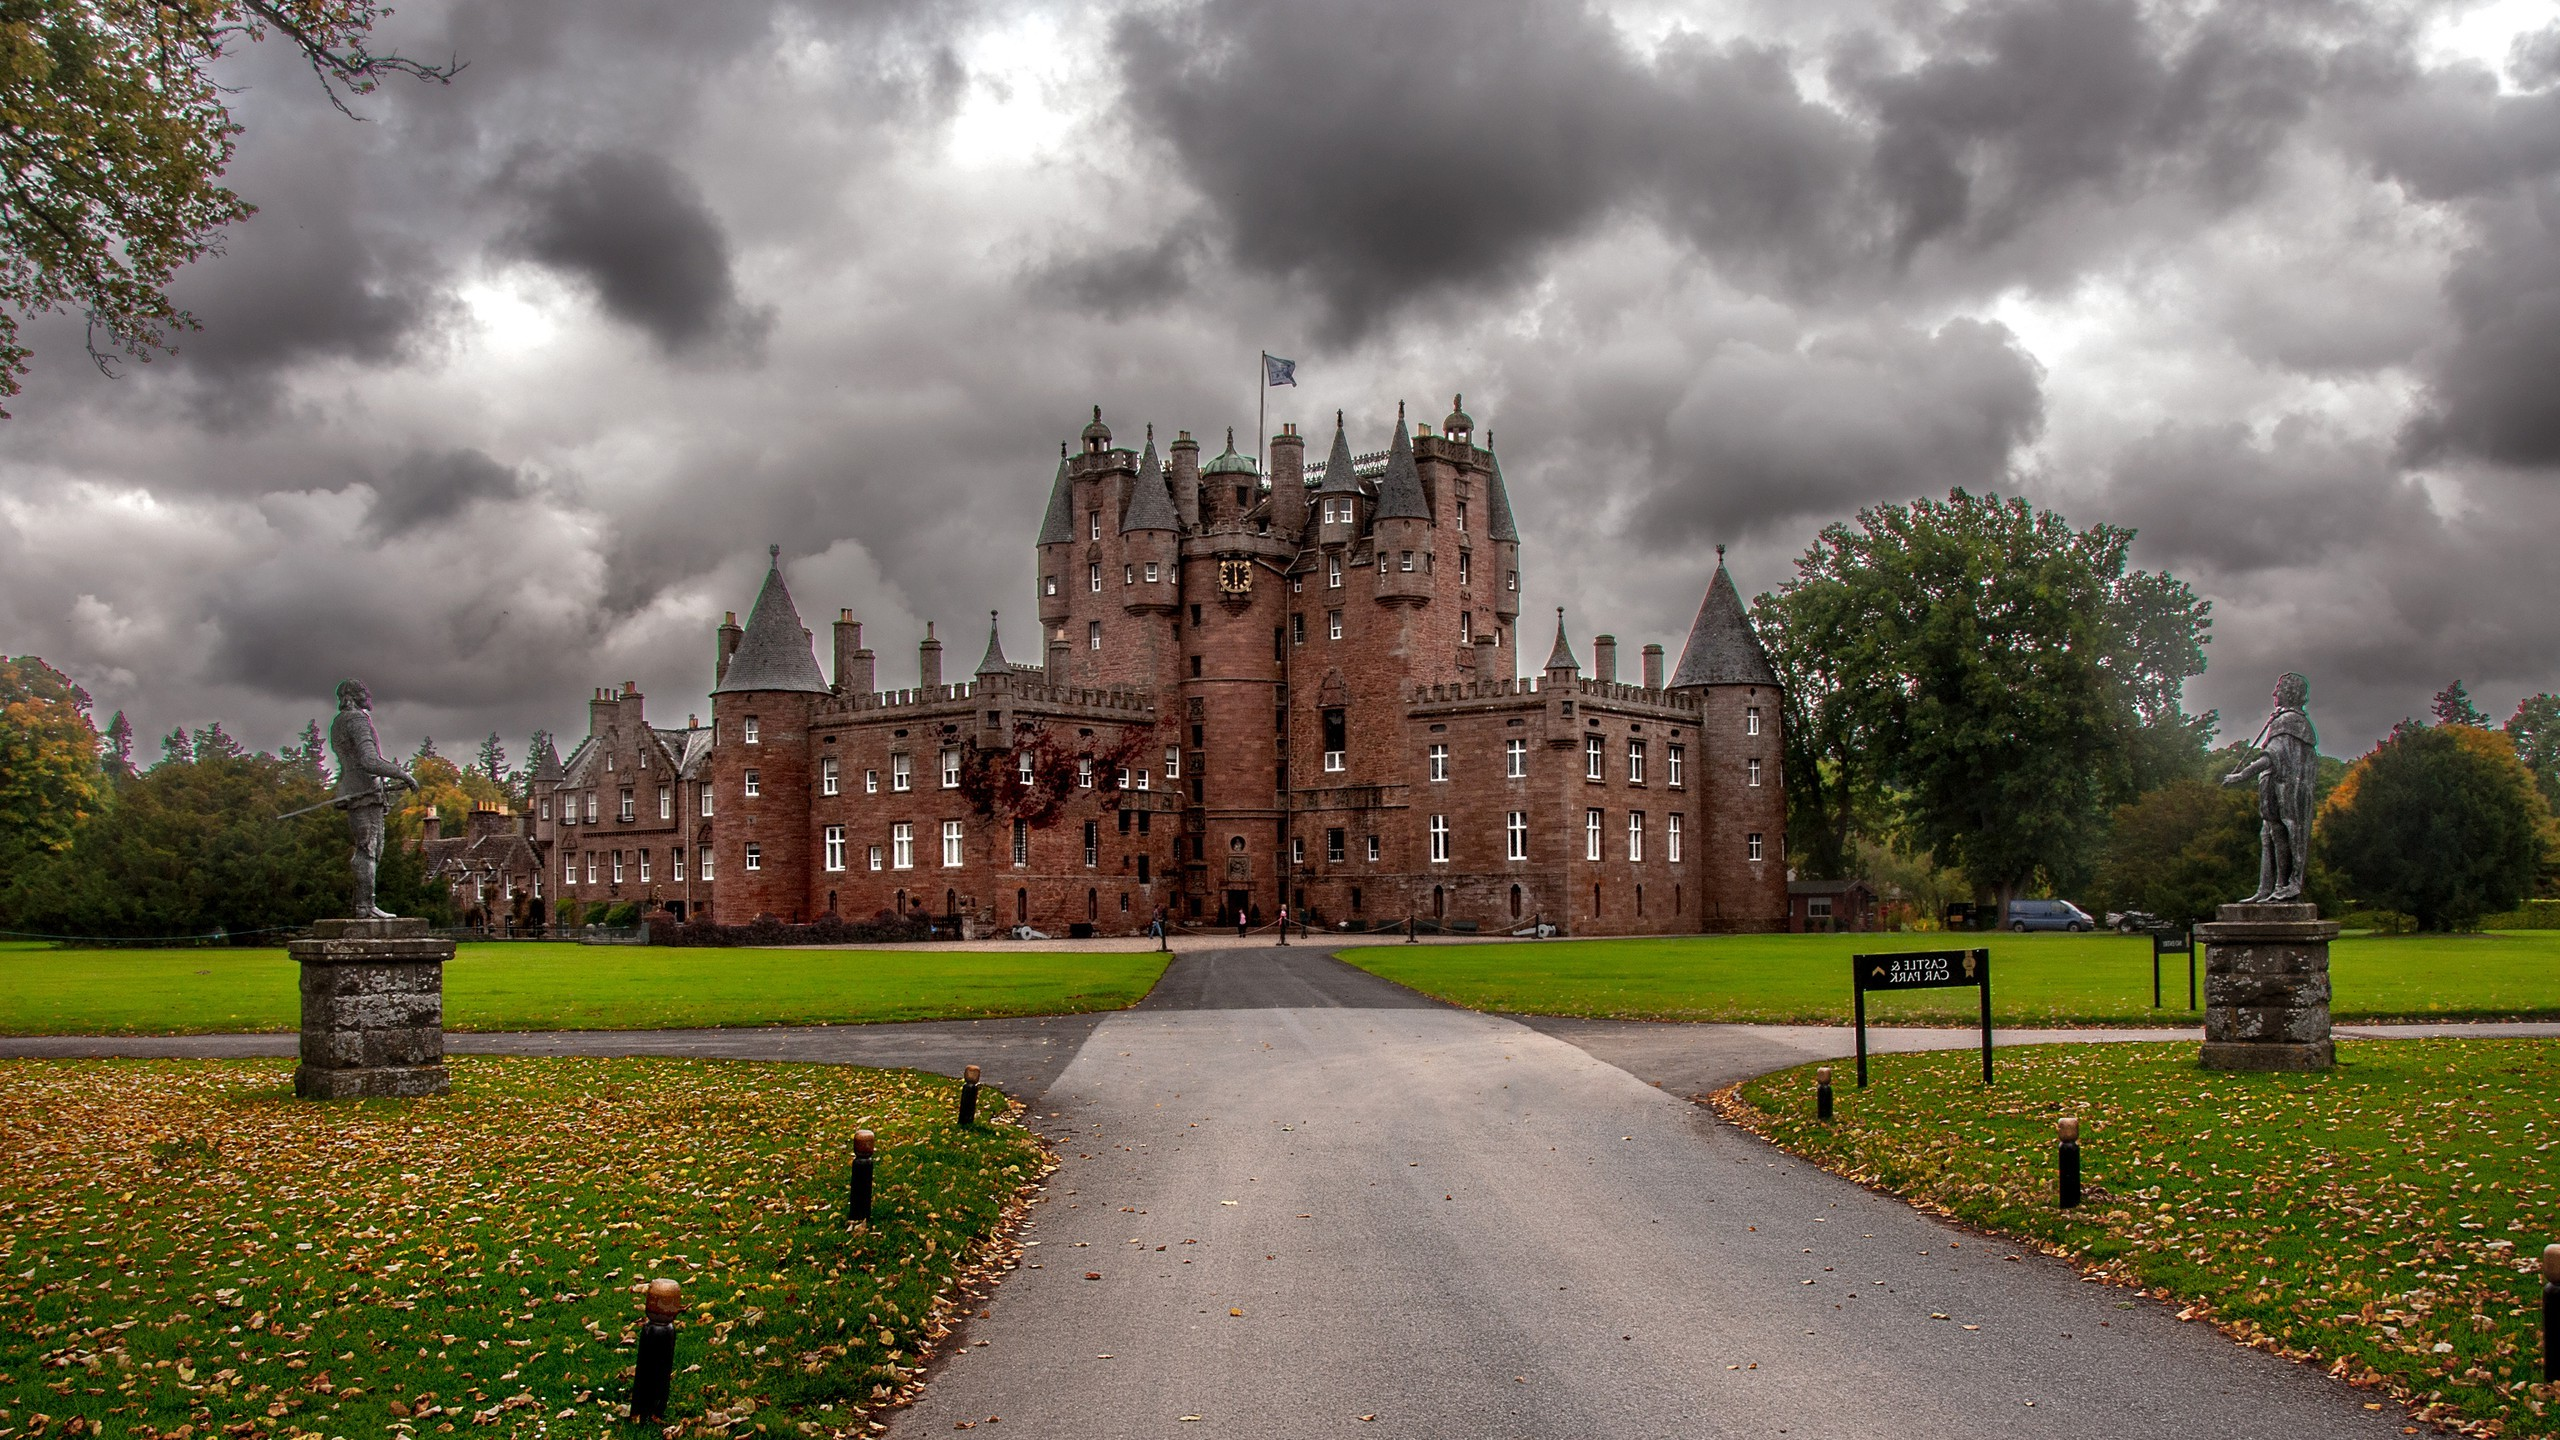 Fall Colors Wallpaper New England Wallpaper 2560x1440 Px Architecture Castle Clouds